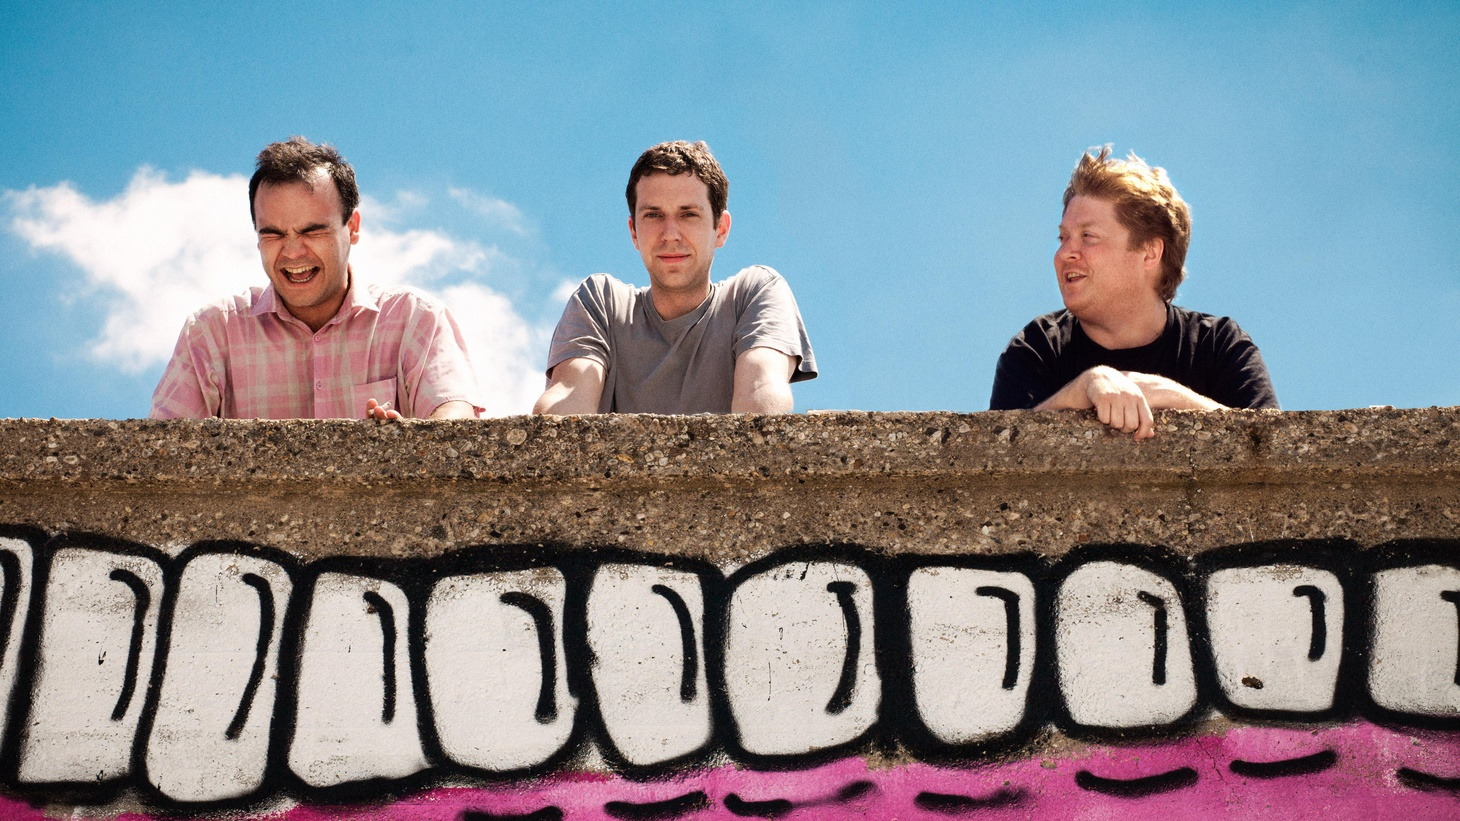 Future Islands tug at your heart with synth-pop driven songs featuring swelling melodies and lyrics about love and loss....